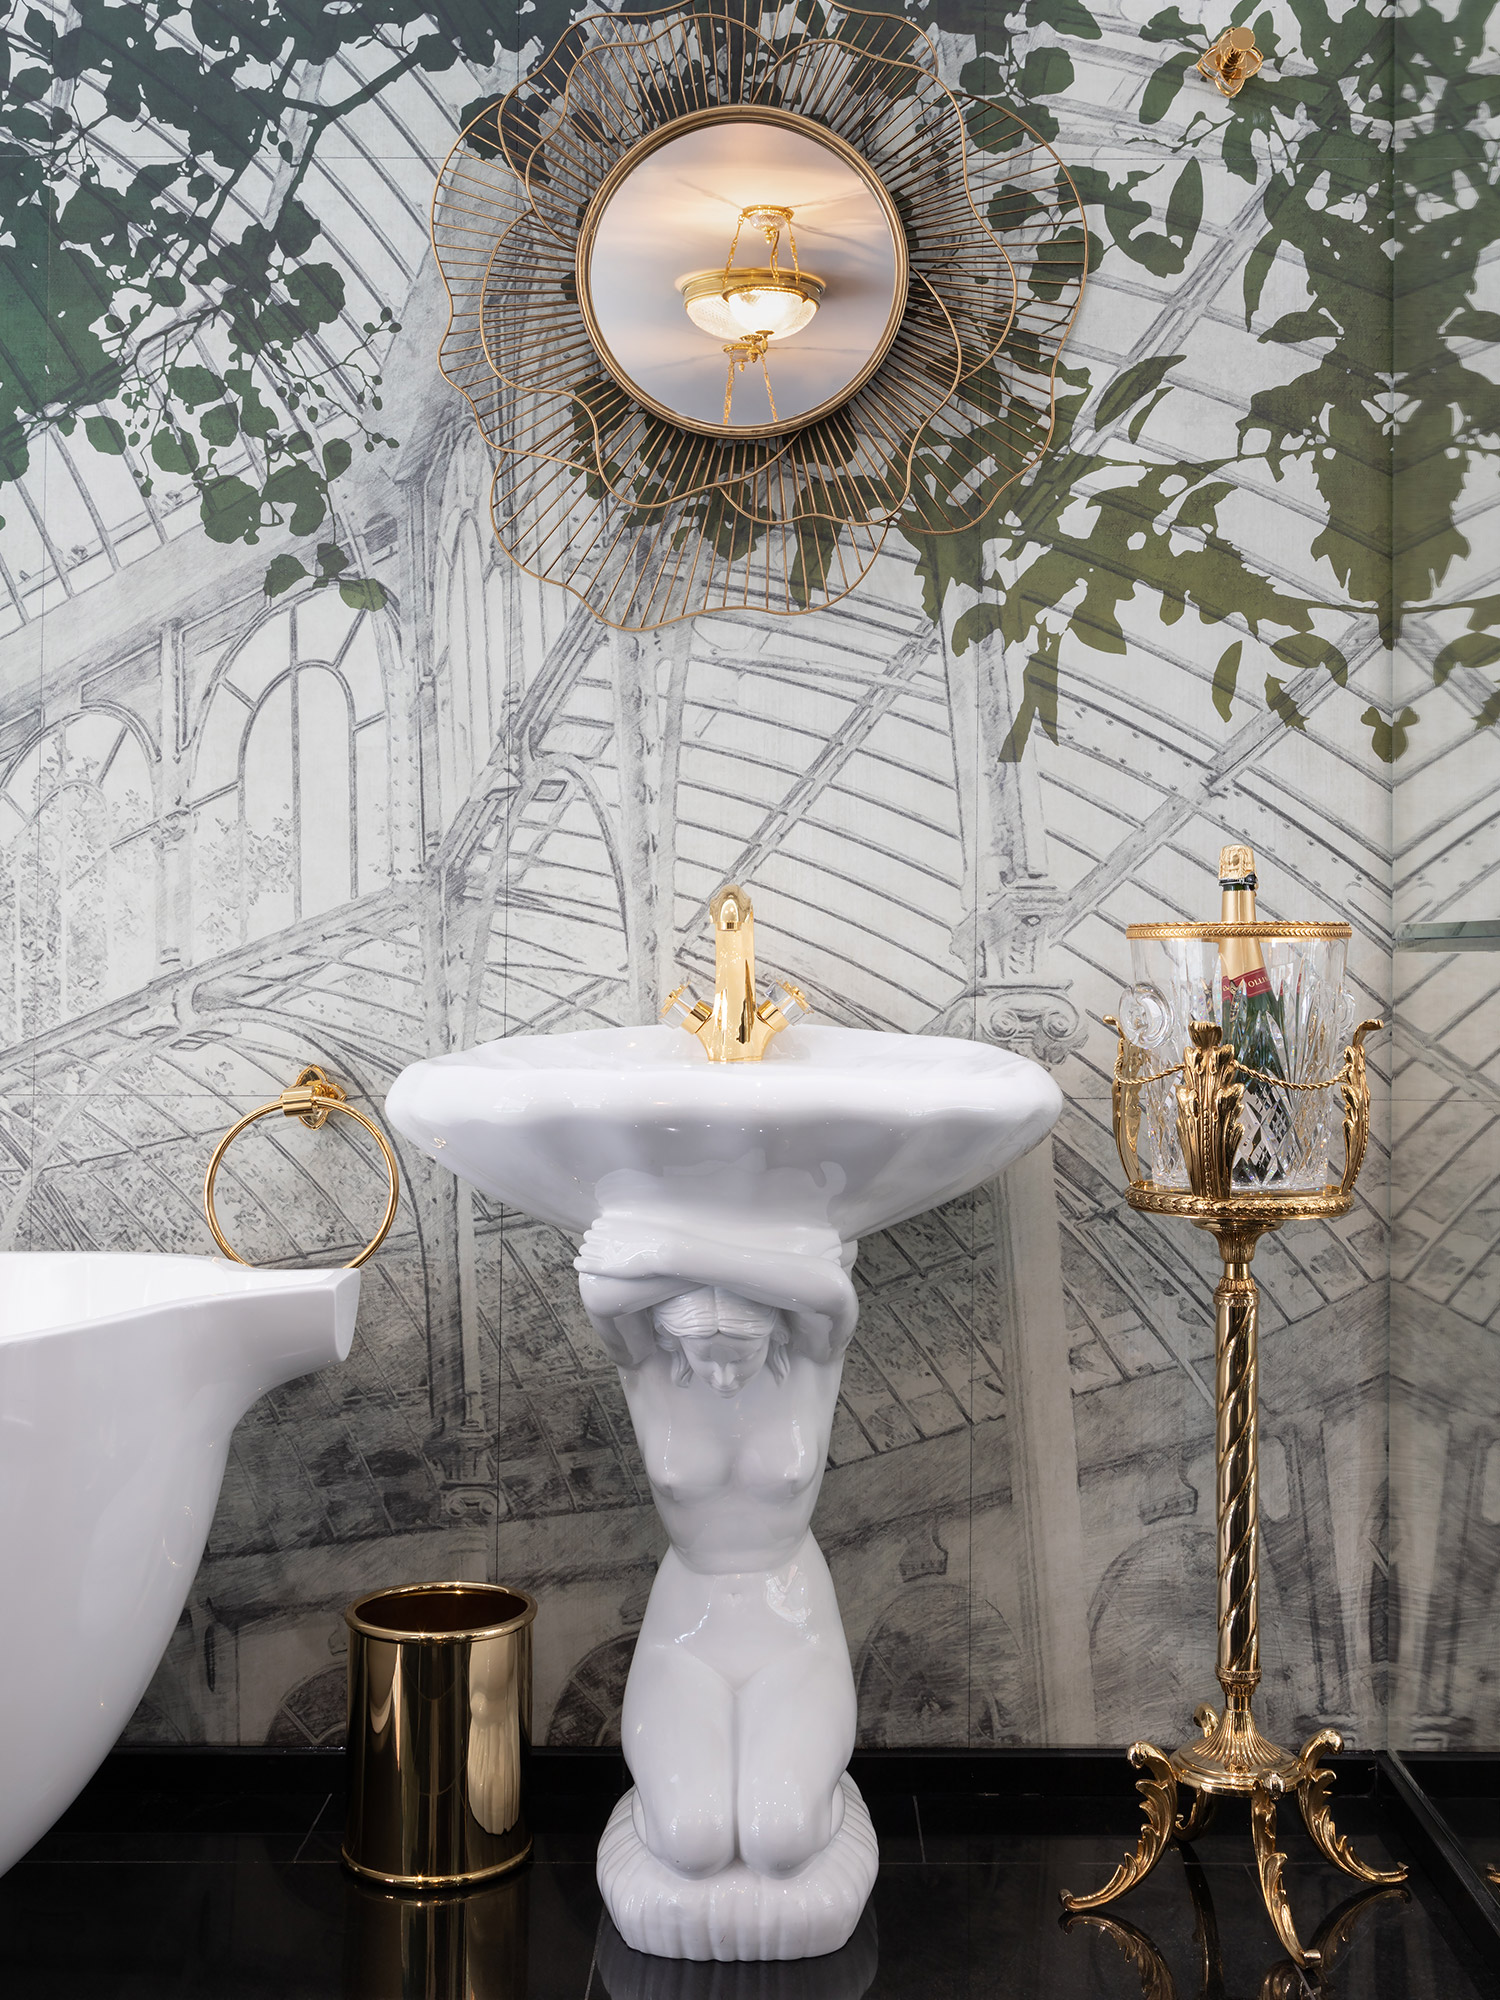 West One Bathrooms Mayfair Showroom South Audley Street 2018 6a